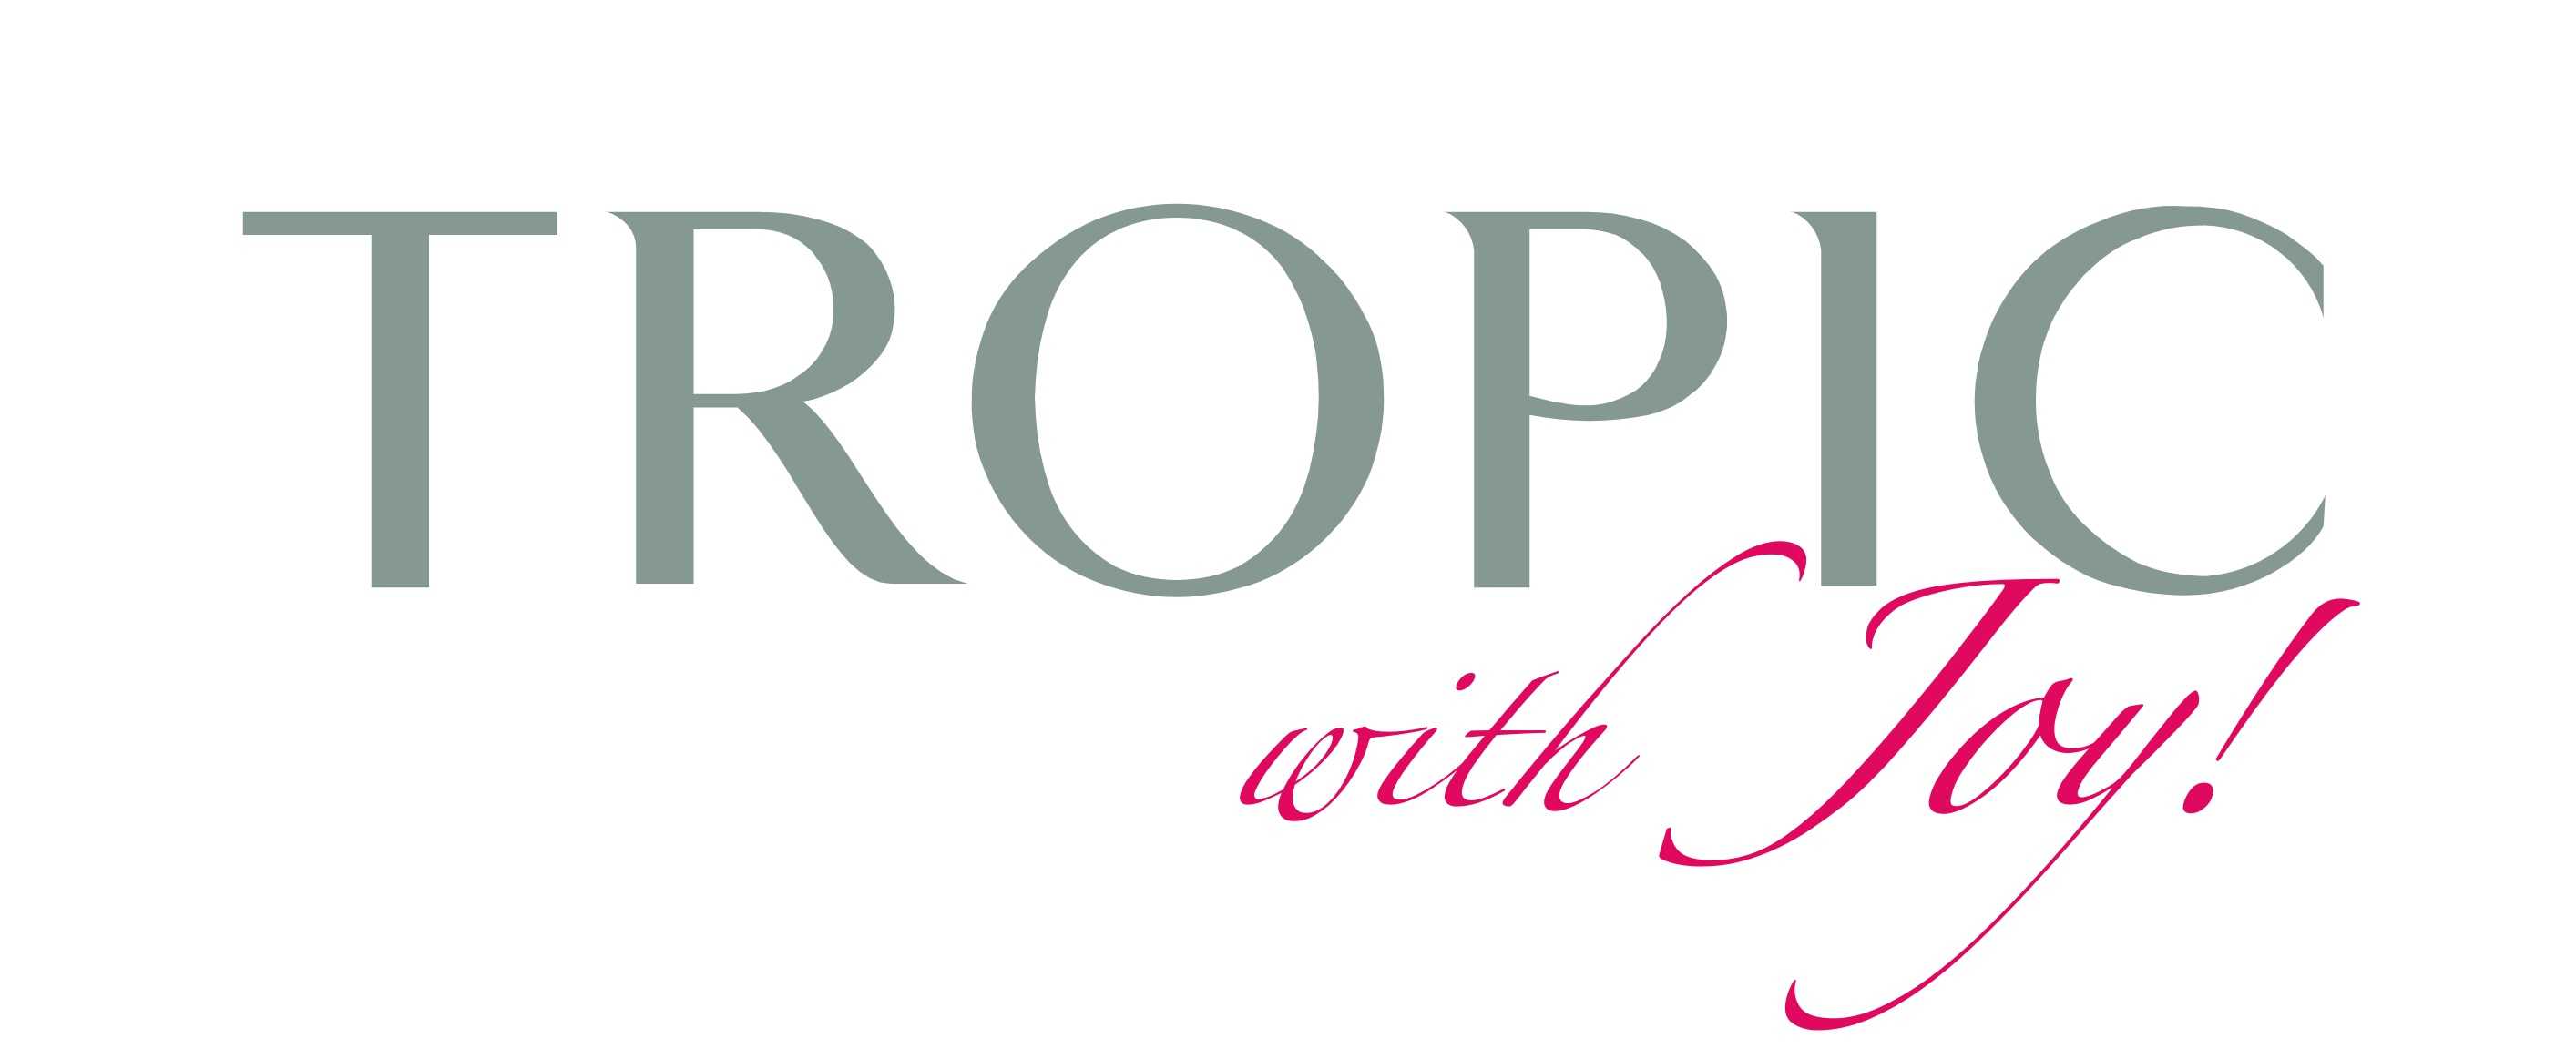 Tropic with Joy logo1